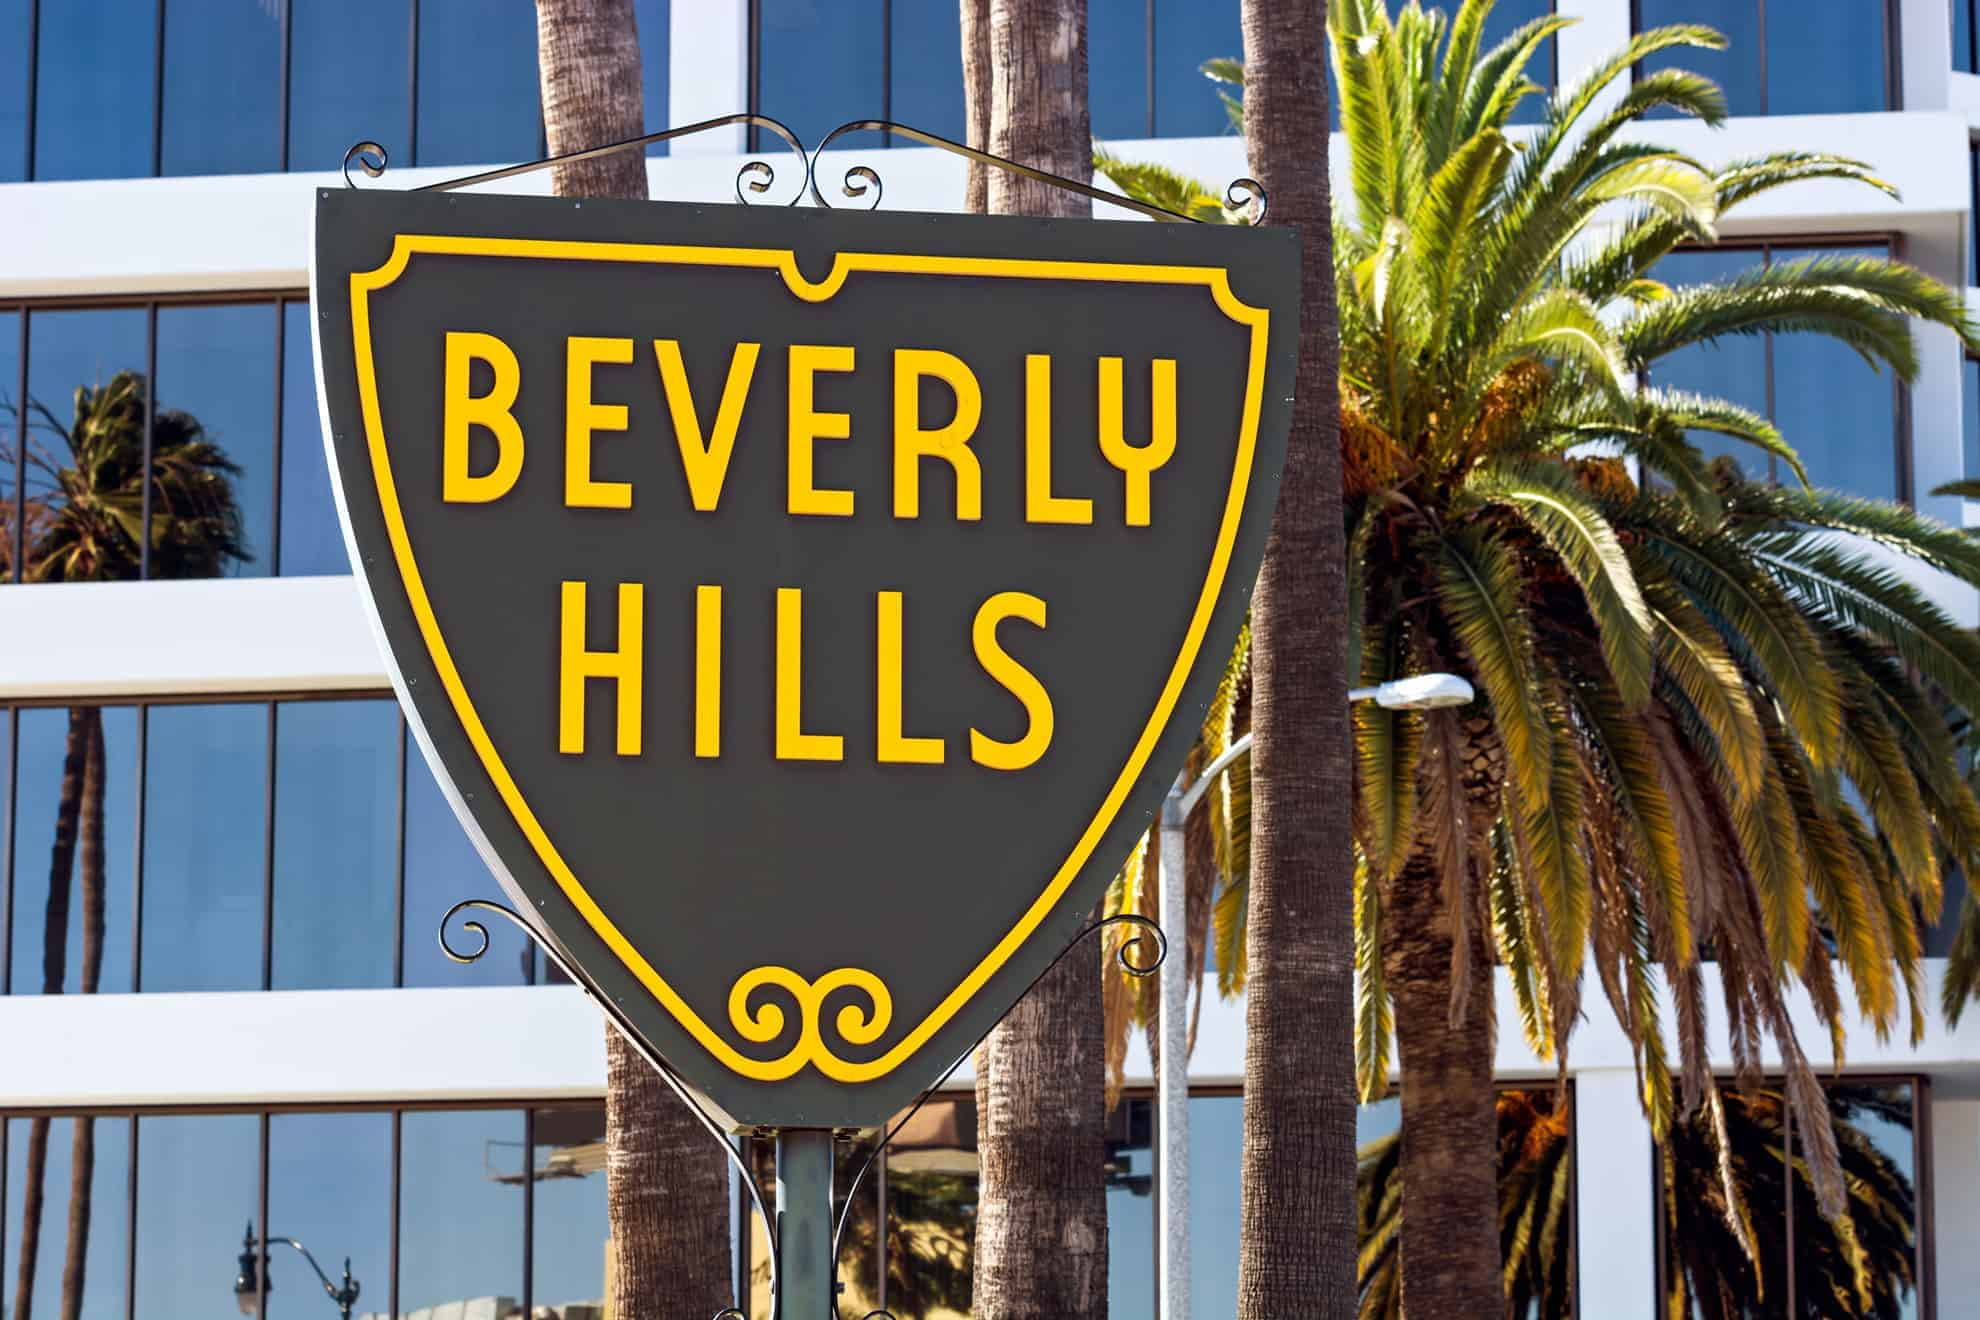 Celebrity Homes Tour - Hollywood Bus Tours - Hollywood Sightseeing Tours